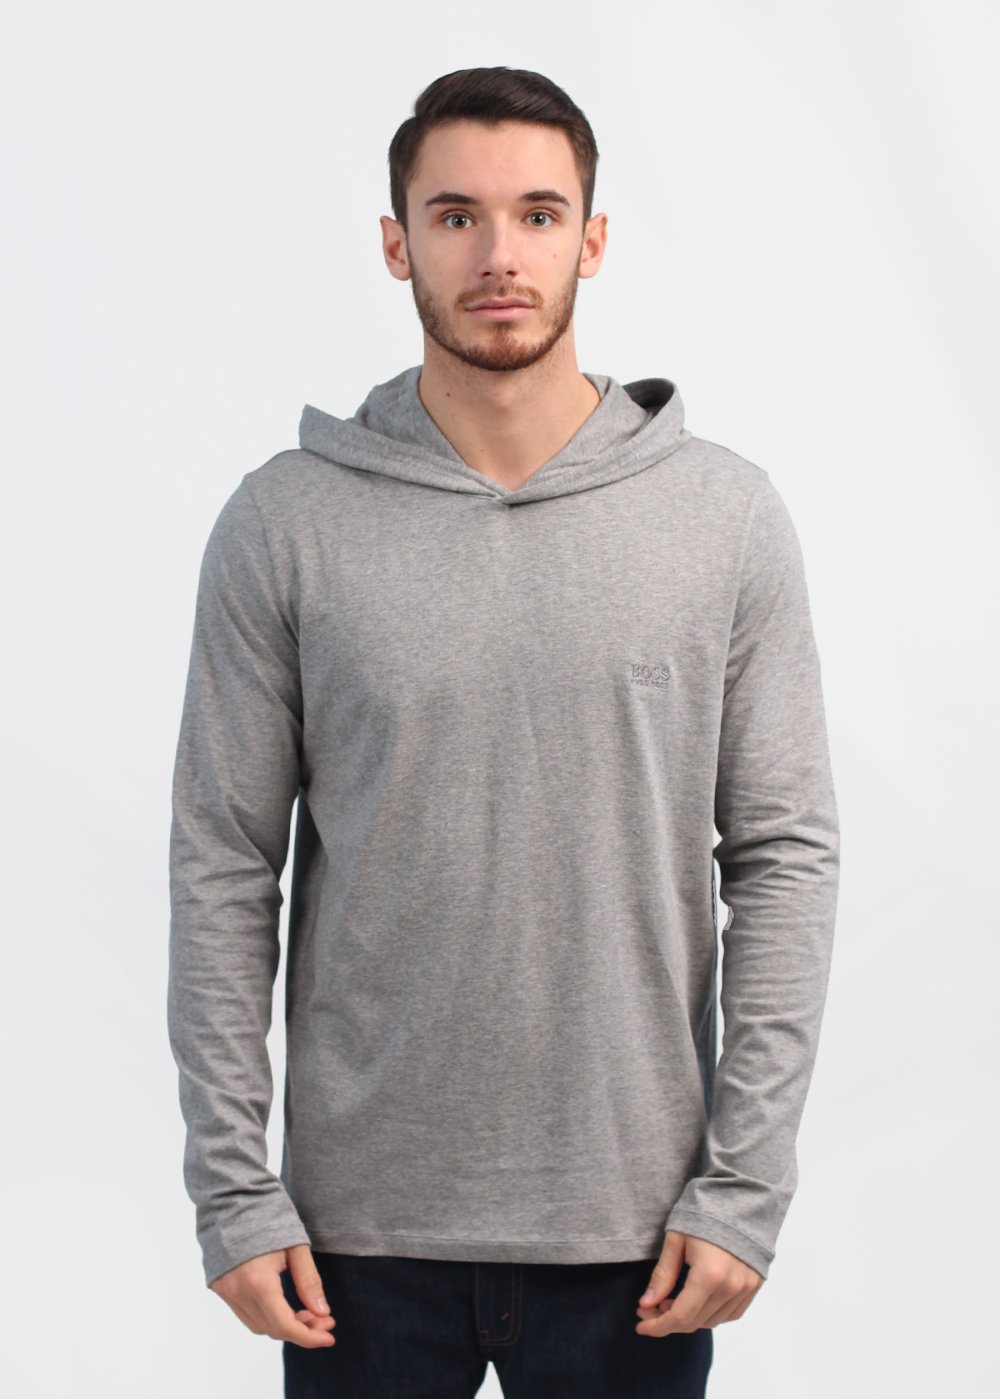 Hugo Boss Black Hooded Long Sleeve Shirt - Medium Grey